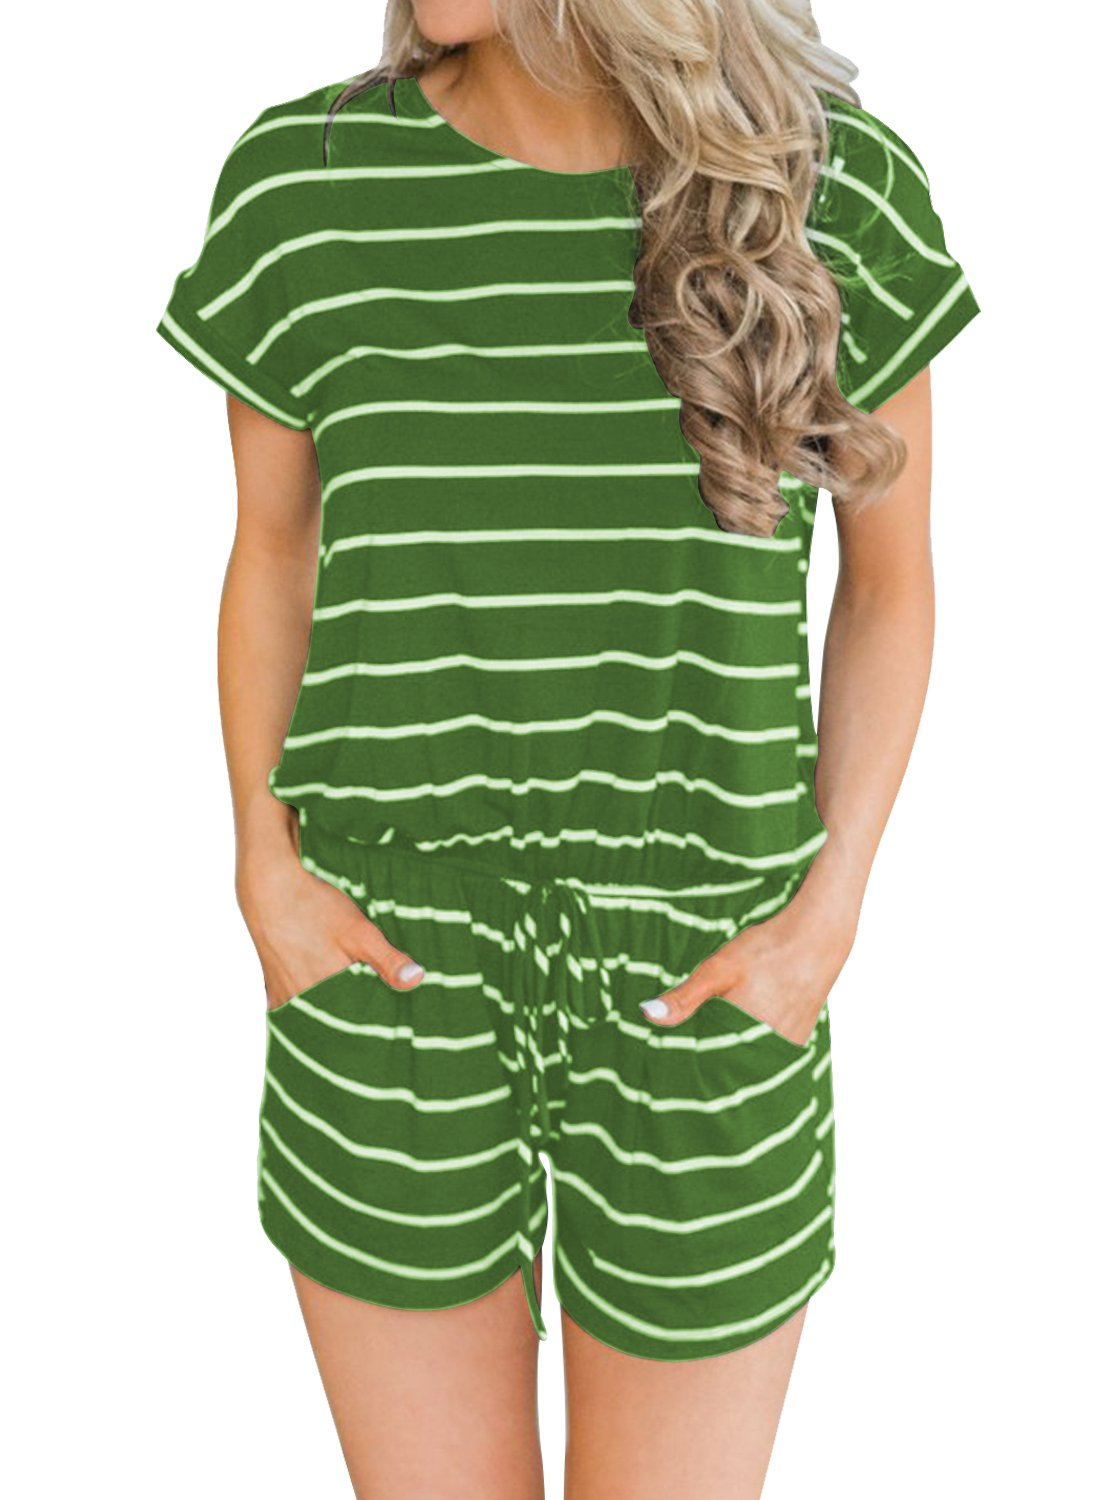 MIHOLL Women's Summer Striped Jumpsuit Casual Loose Short Sleeve Jumpsuit Rompers (Green, Large)